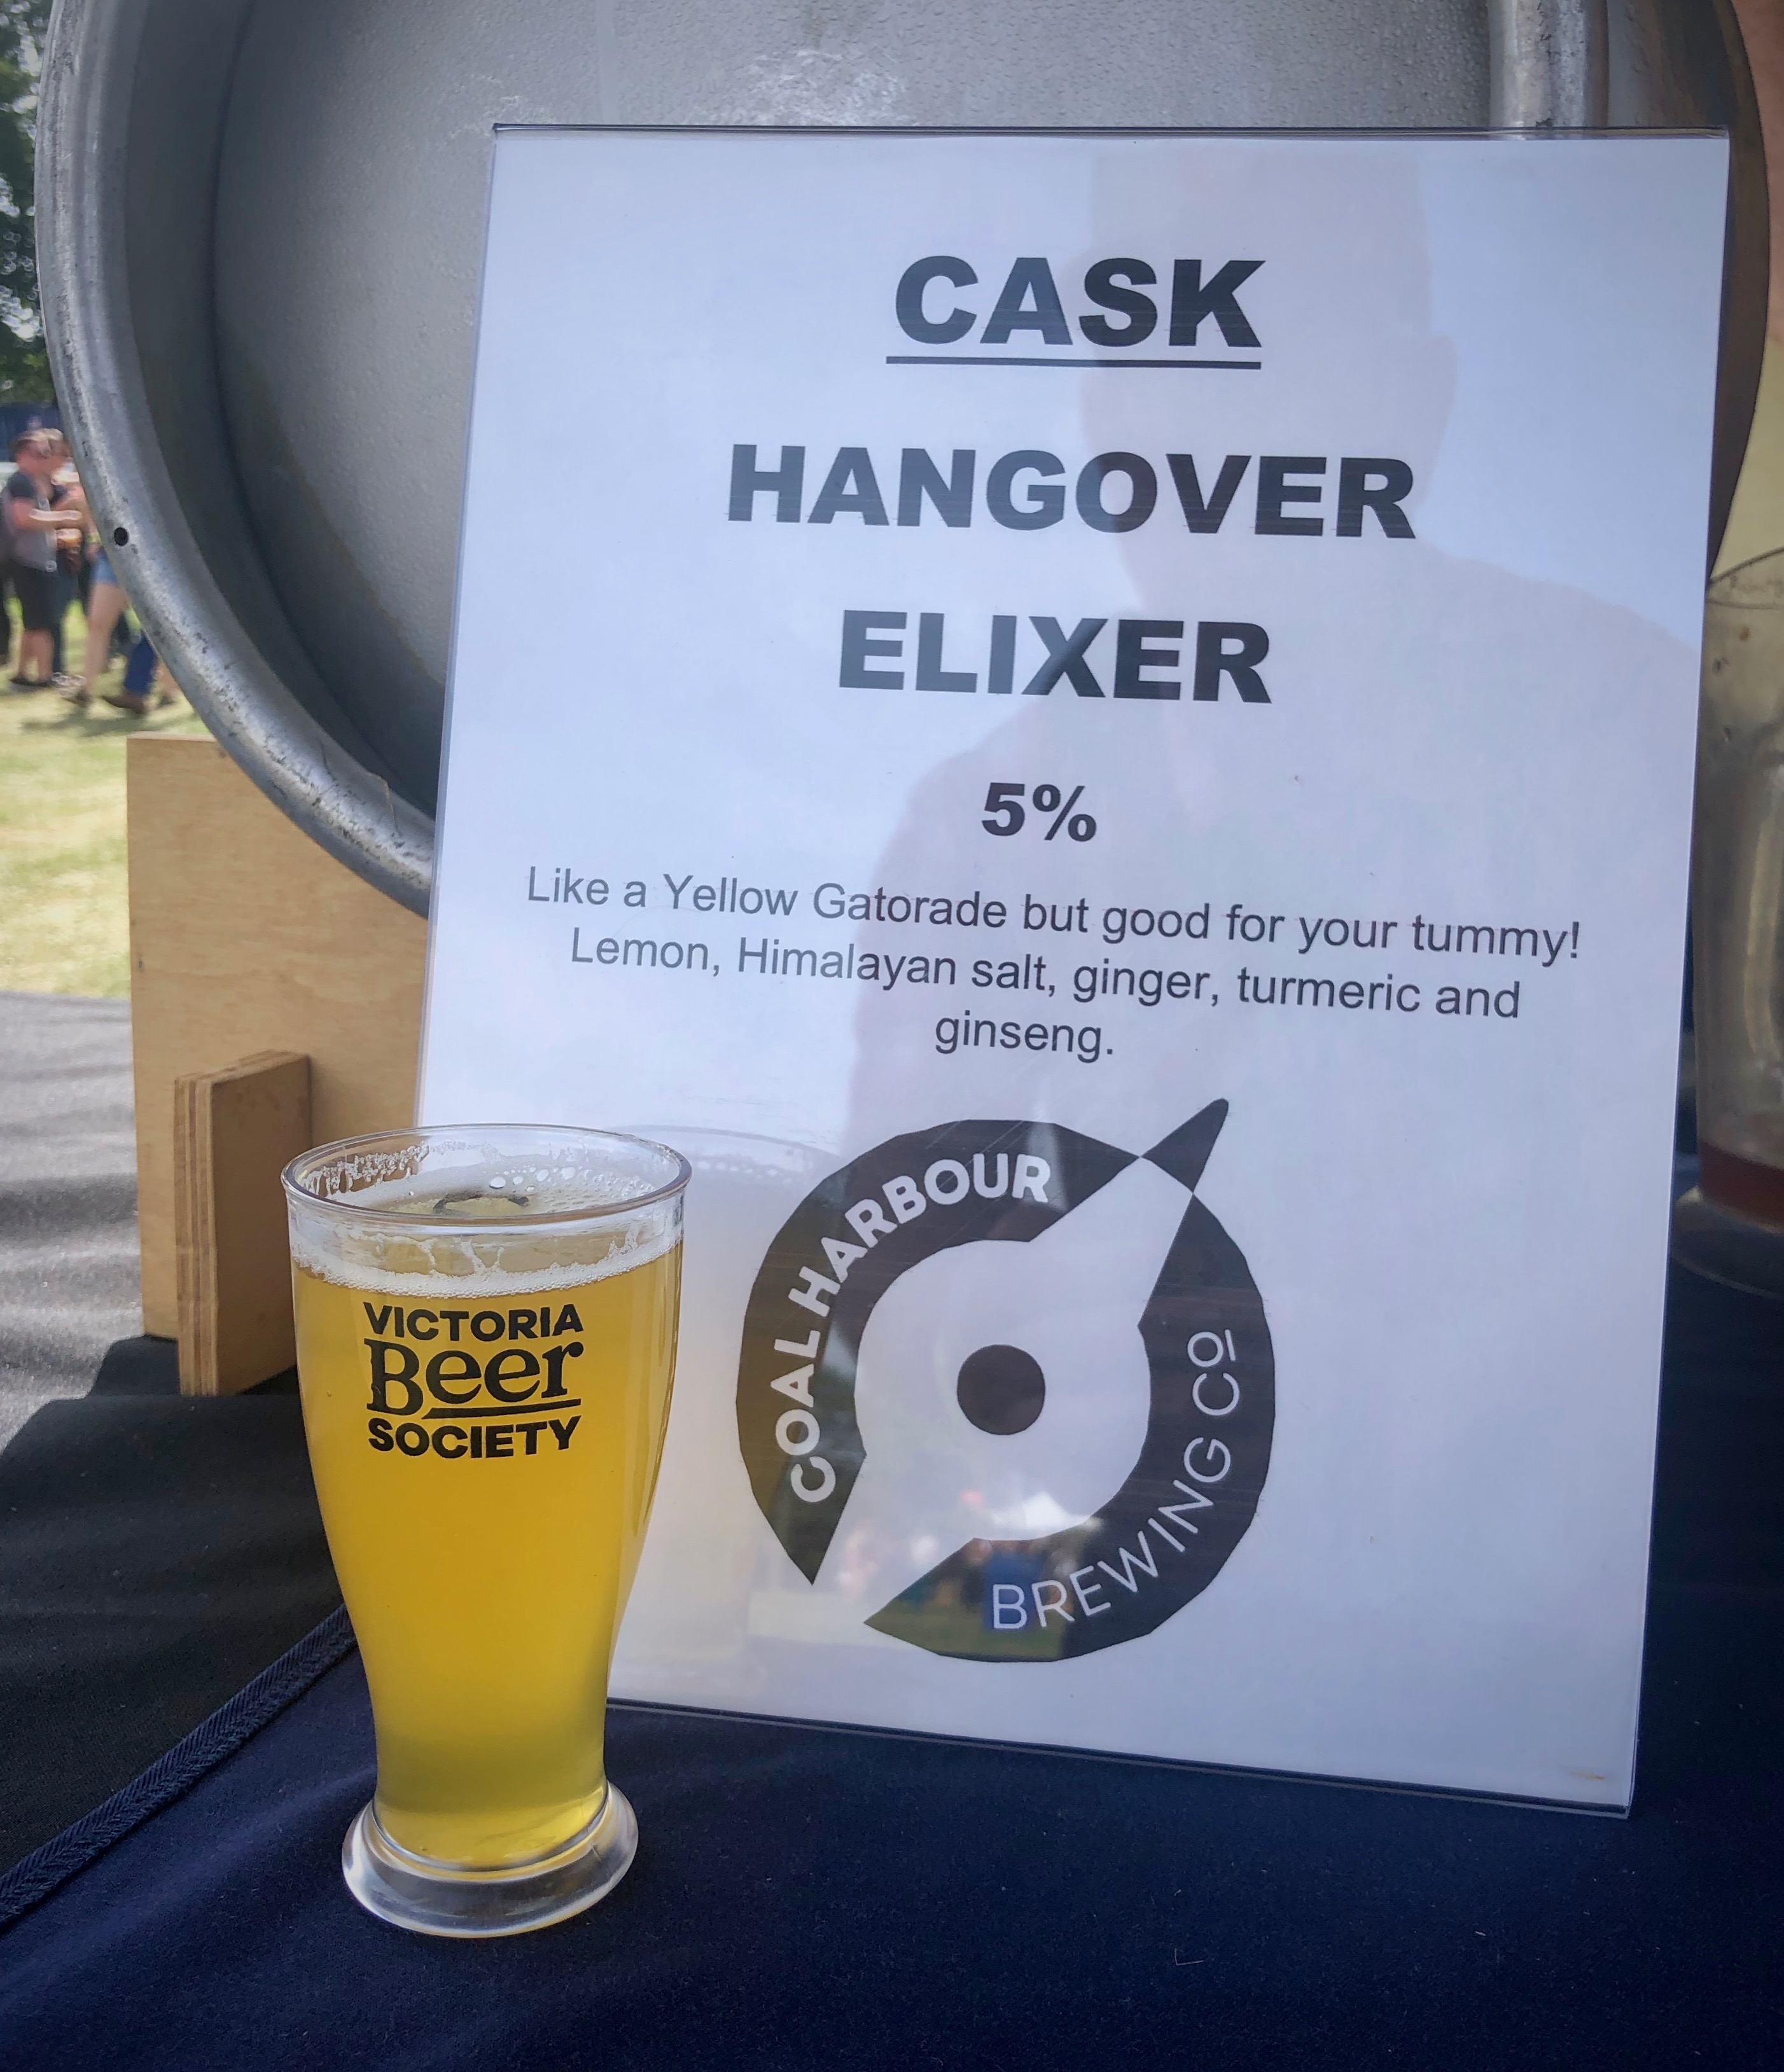 On day two of the 2019 Great Canadian Beer Festival this Hangover Elixer on Cask from Coal Harbour Brewing hit the spot!